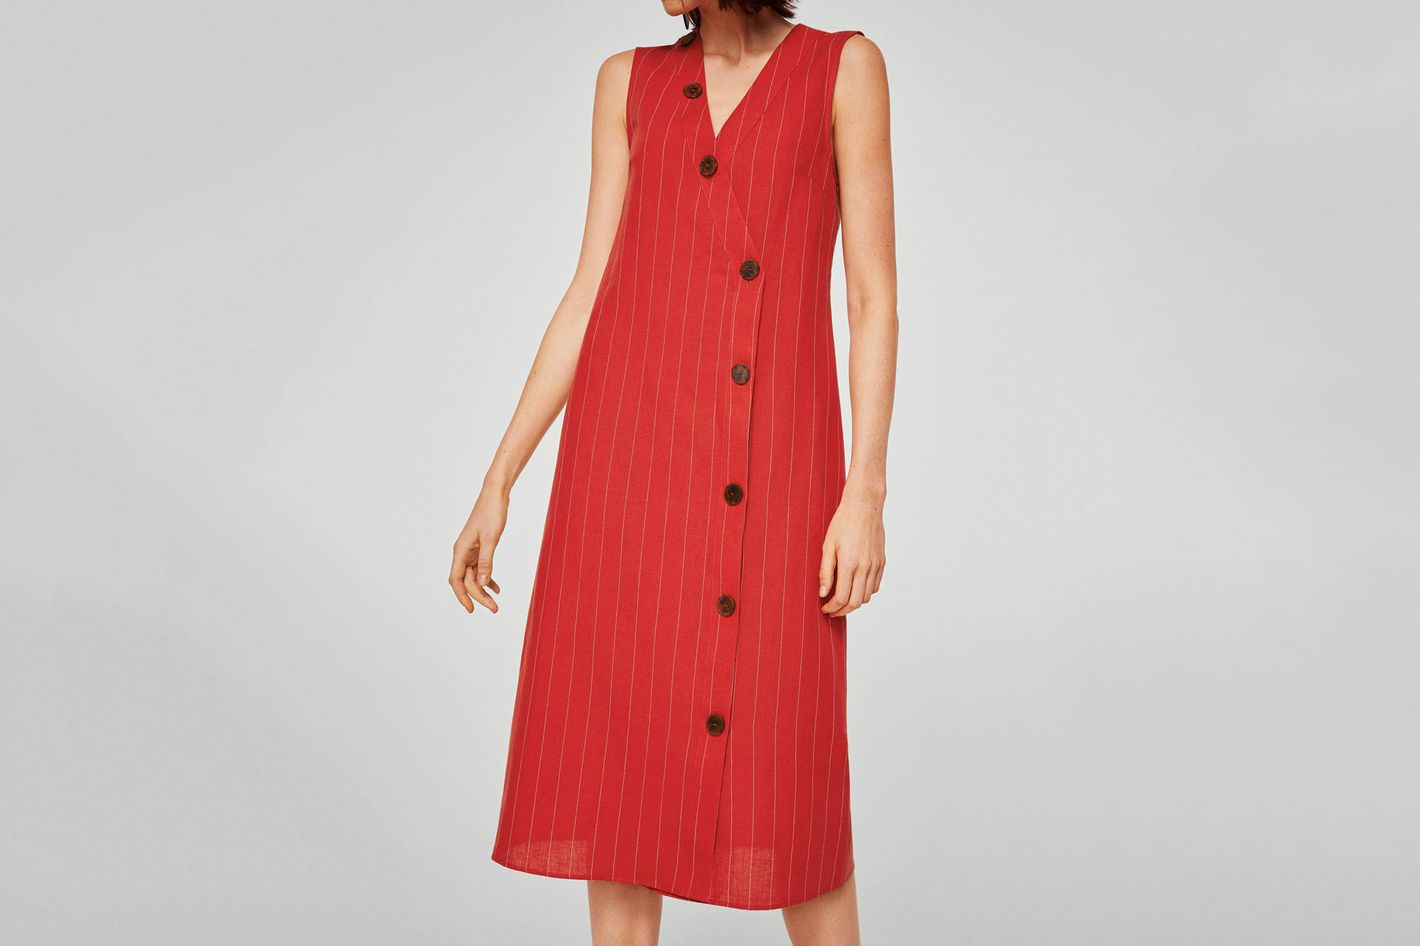 Mango Striped Linen Dress: Linen Summer Dresses For Weddings At Websimilar.org